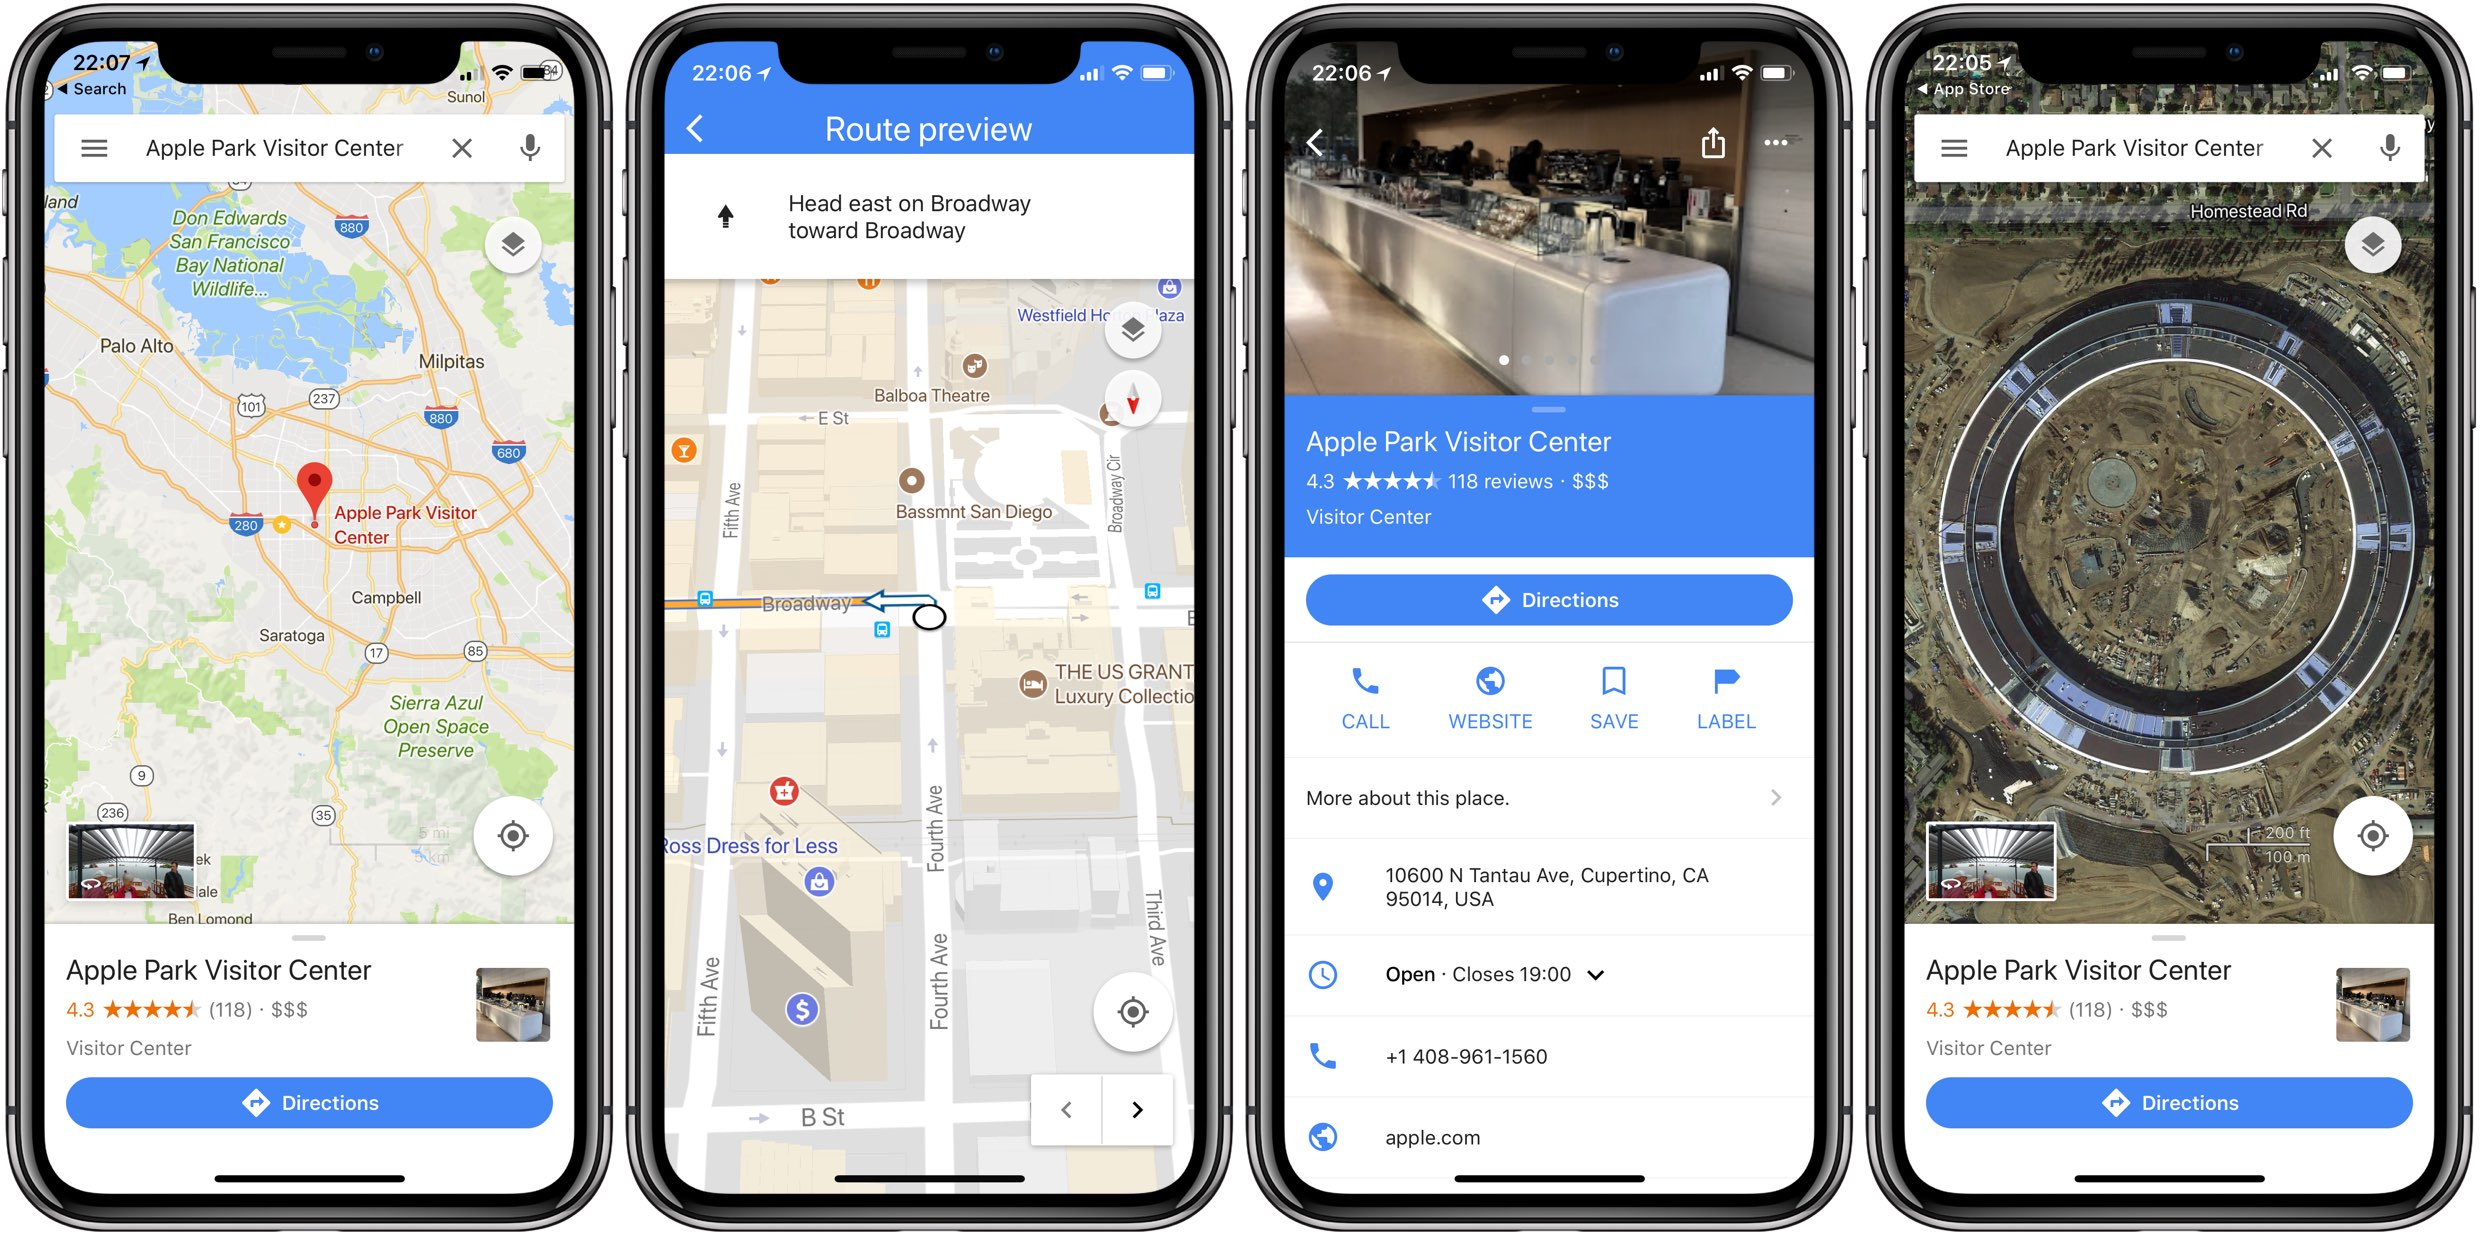 Google Maps picks up iPhone X support on google maps error, google maps ipad, google hangouts app iphone, google maps mobile street view, google maps dublin, apps on iphone, smartphone iphone, google maps sign, google maps icon, google maps theme, google maps on phone, google docs app iphone, google g logo red, google earth swastika building, android iphone, google maps street view bloopers, bluetooth iphone, google maps asia countries, google chrome app iphone, travel map apps for iphone,